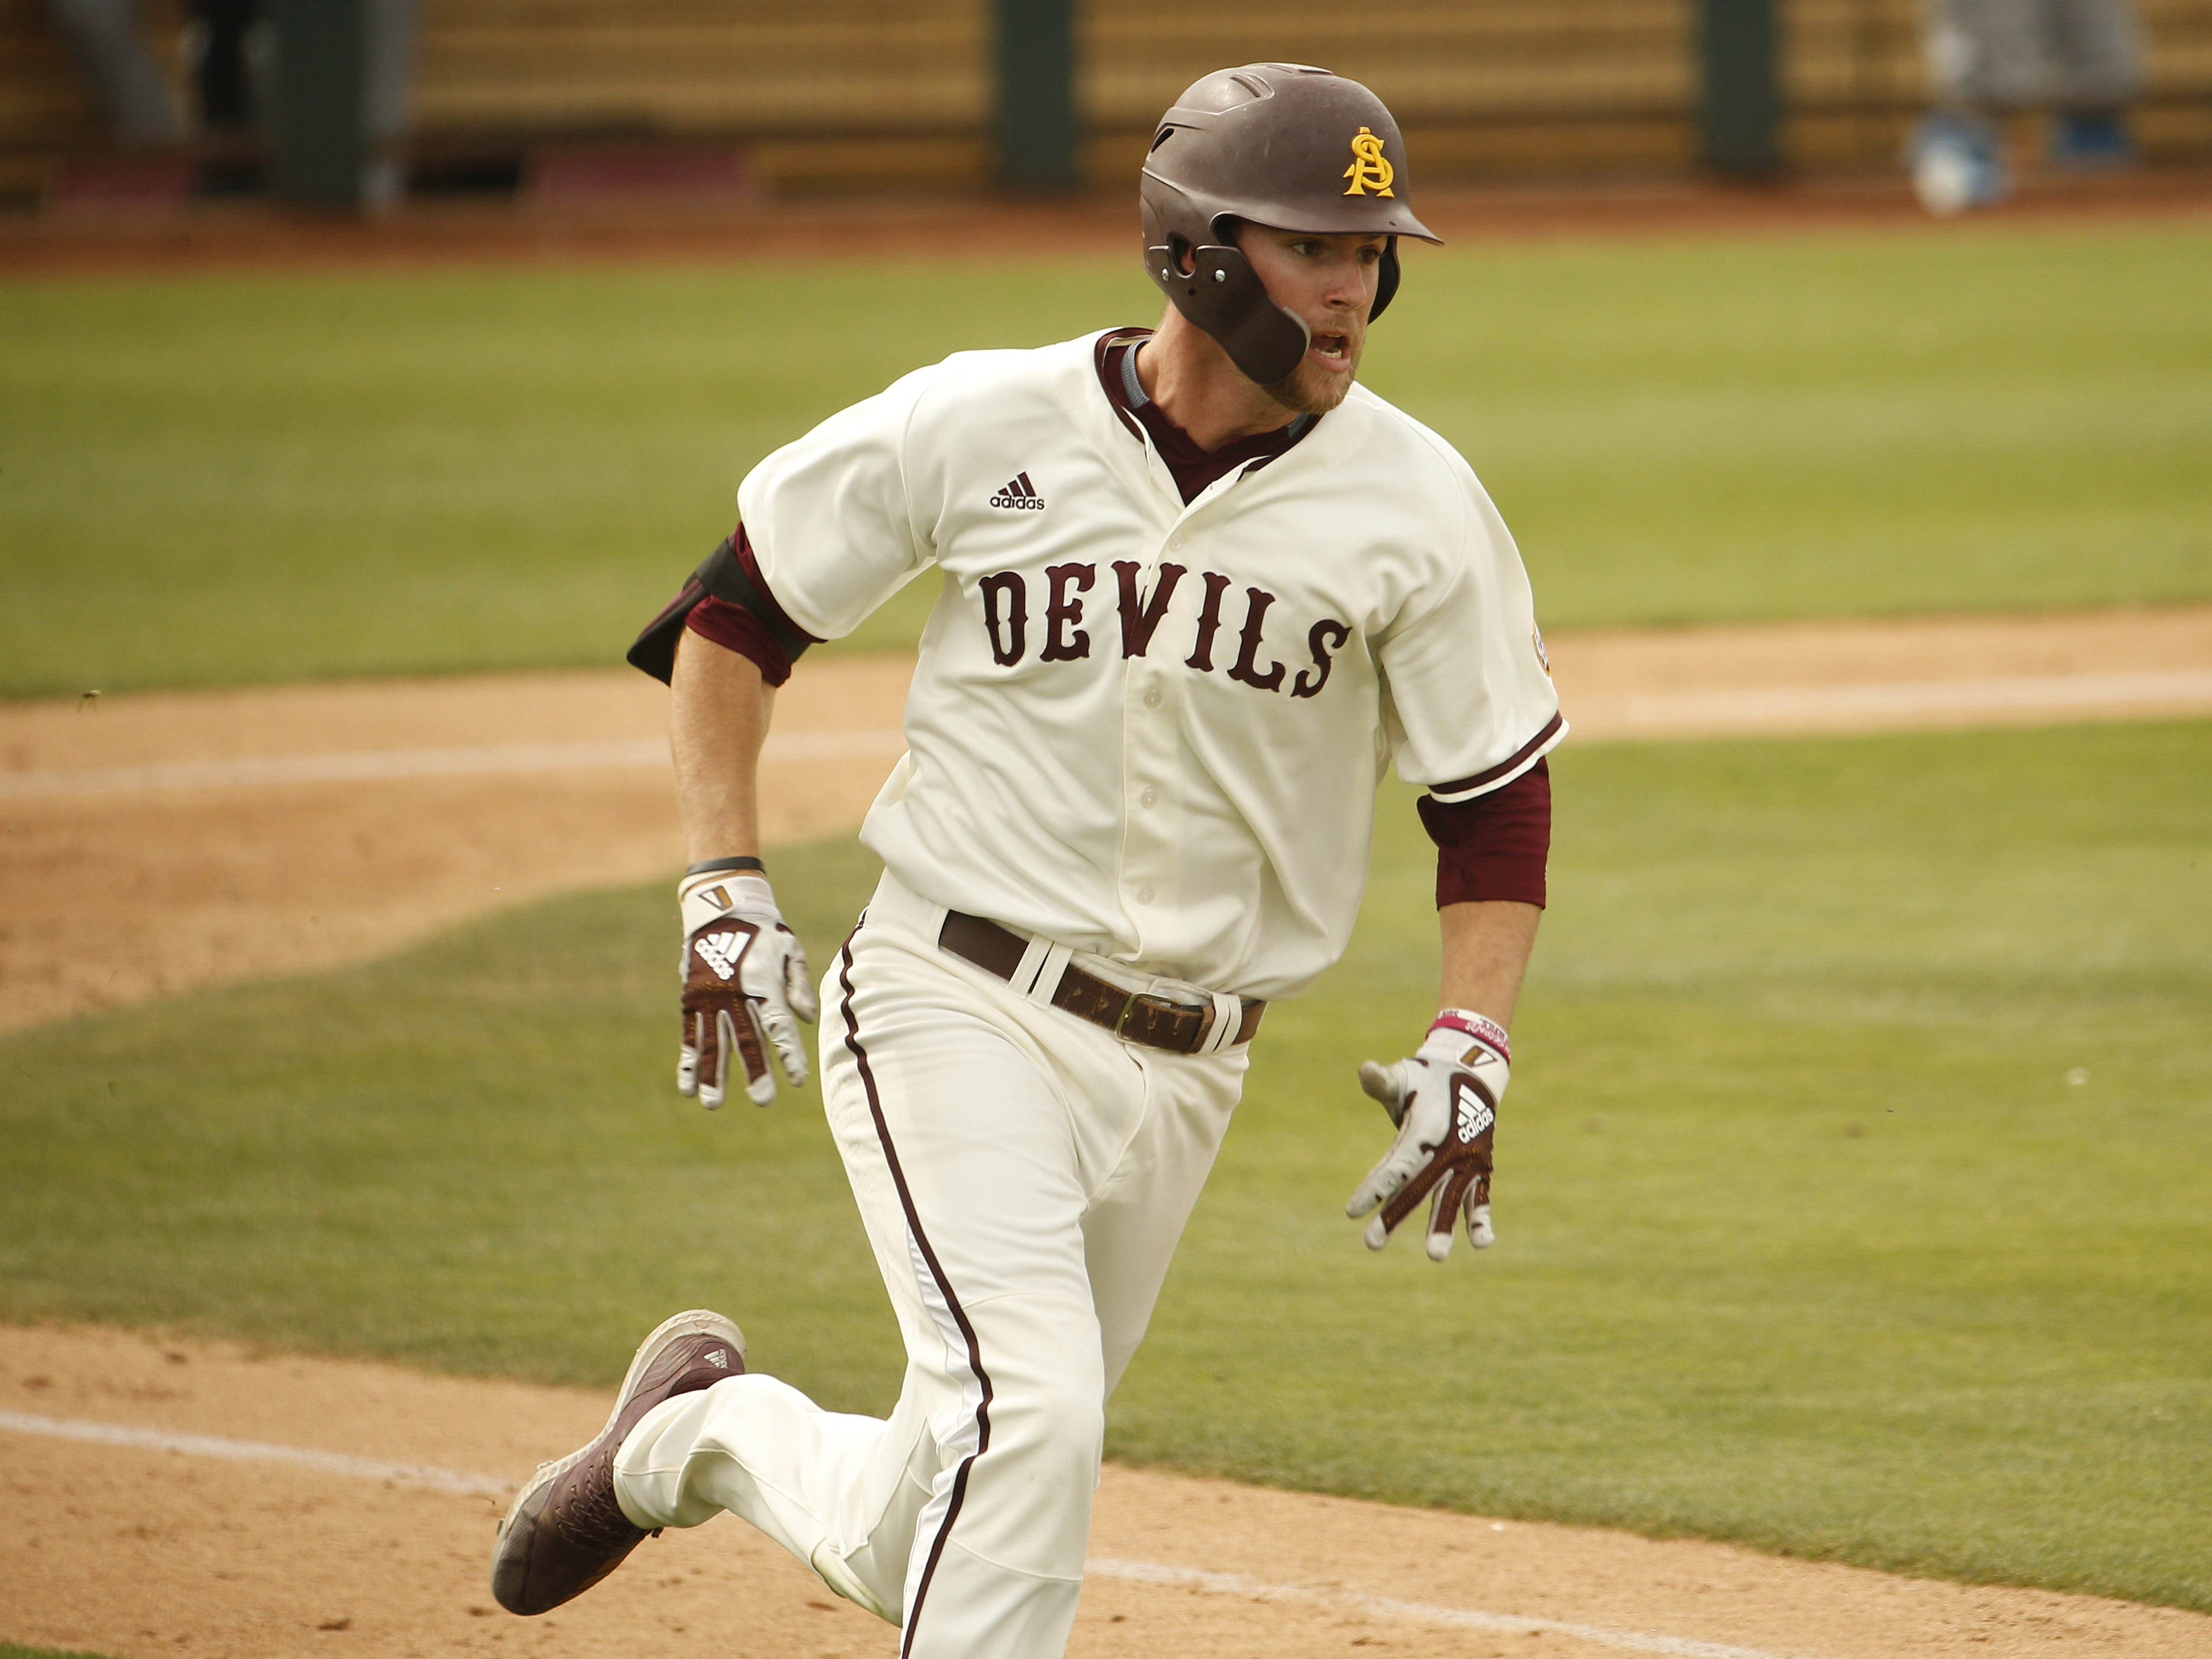 ASU's Gage Workman (14) heads to first on his way to a double during the fifth inning against UCLA at Phoenix Municipal Stadium in Phoenix, Ariz. on May 5, 2019.